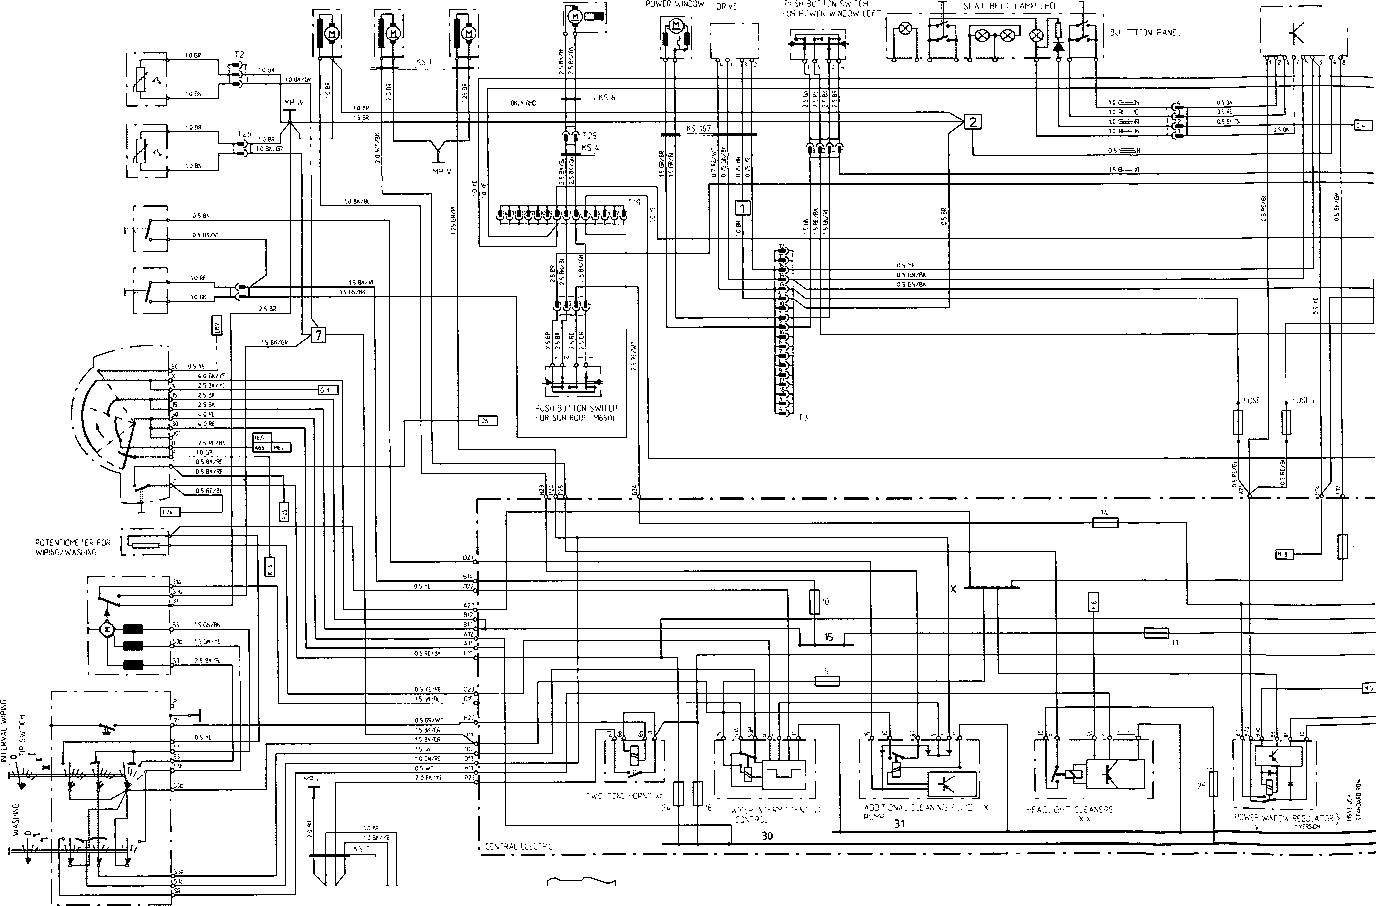 wiring diagram iype 928 s model 88 page flow diagram Diagram for Tachometer 1984 Porsche 944 porsche 928 fuel pump wiring diagram